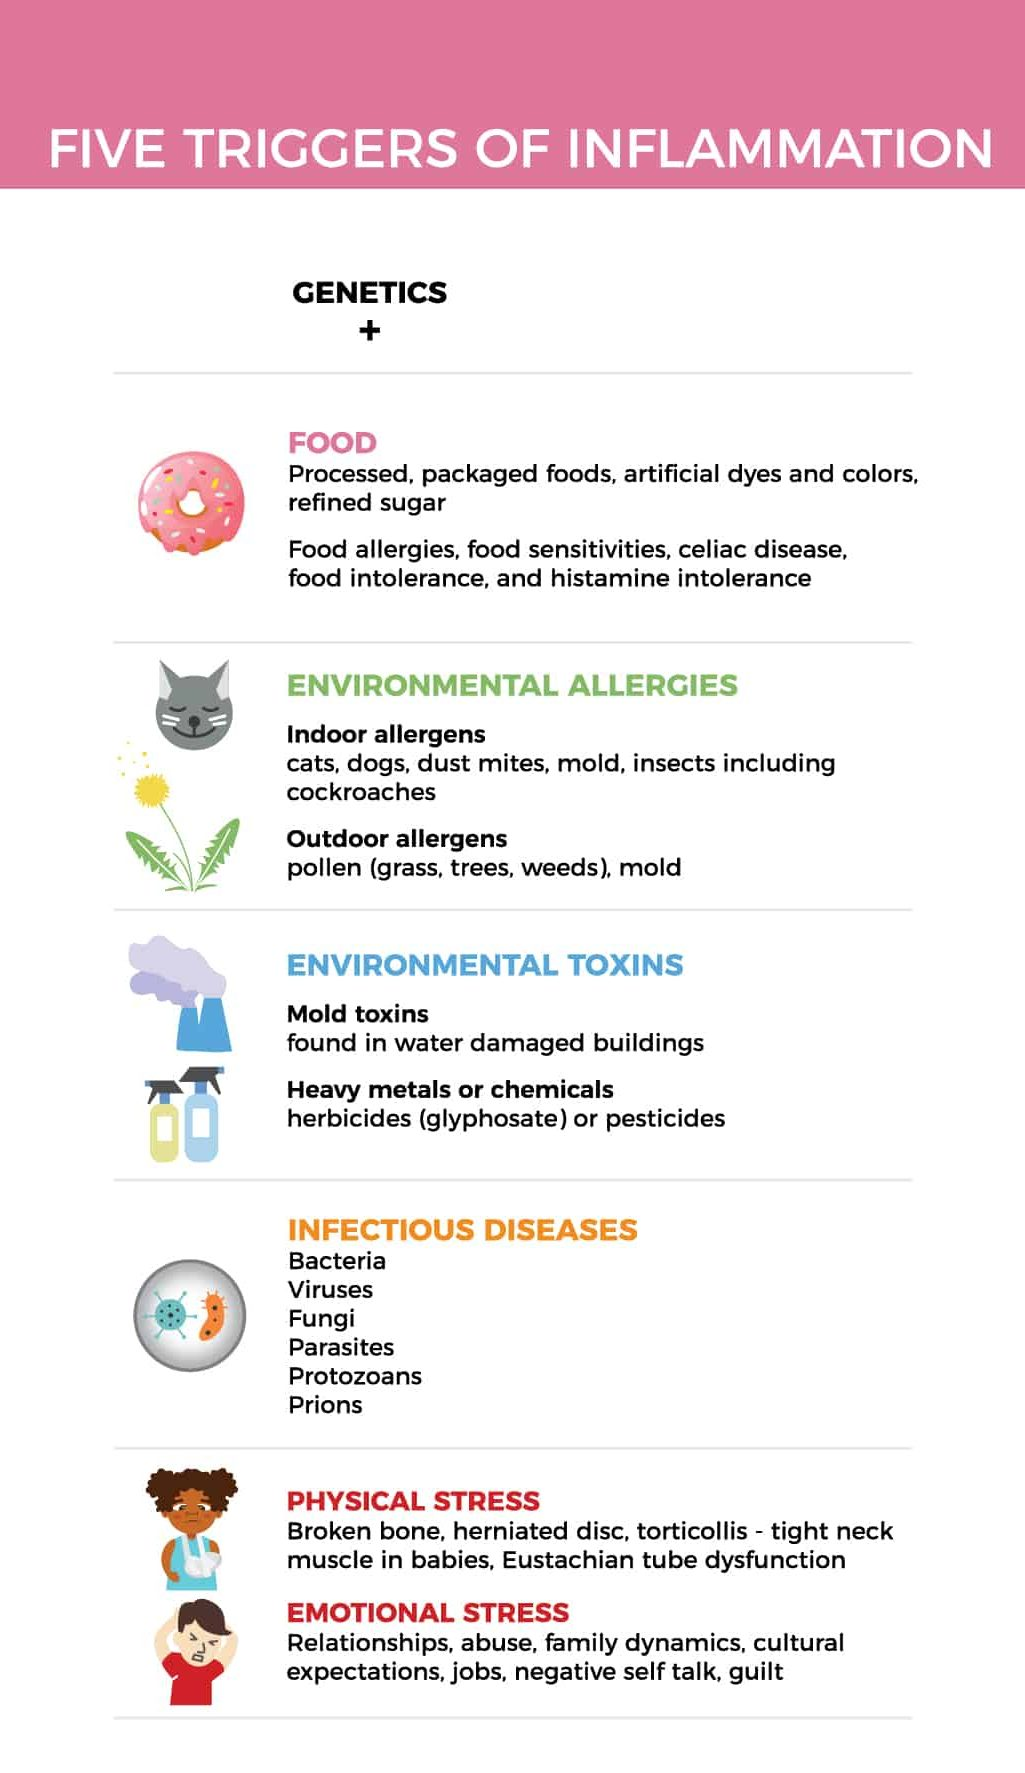 Five Triggers of Inflammation Infographic